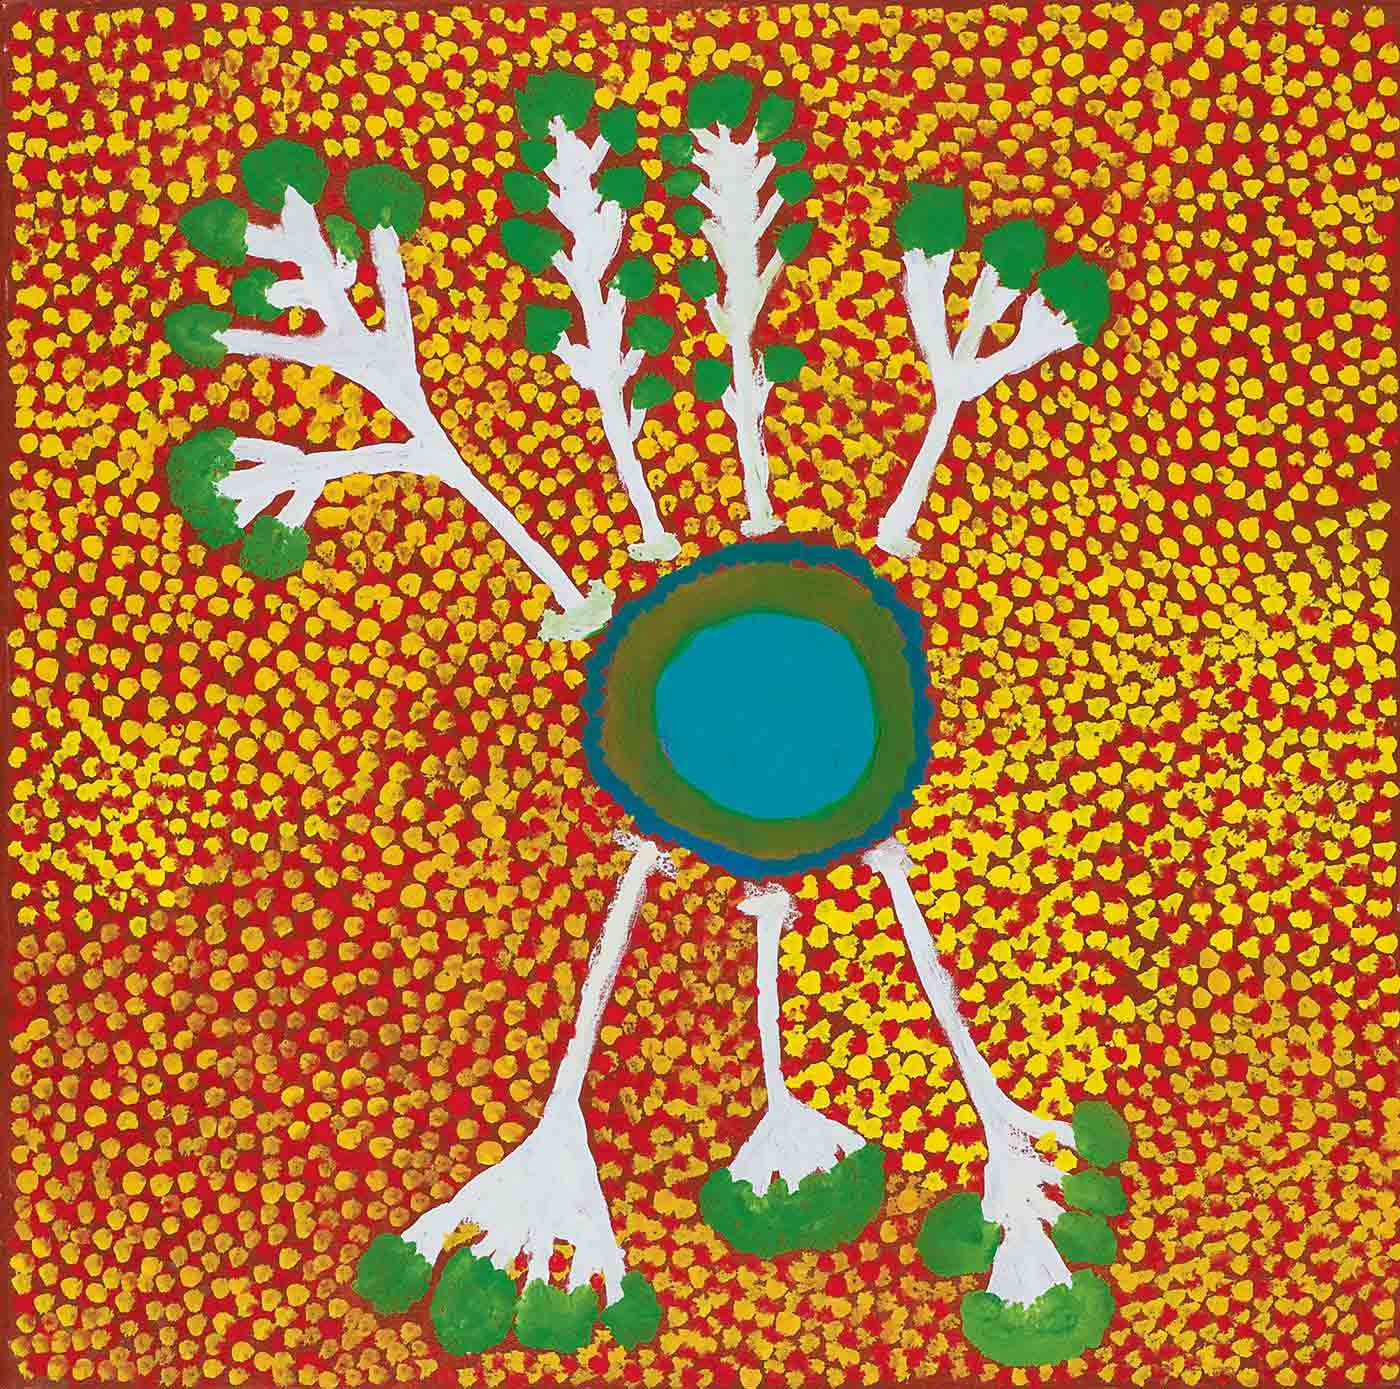 A square painting on canvas with a concentric circle in turquoise, green and blue in the centre with four tree branches in white and green protruding from the top, and three from the bottom. The background of the painting is brown with an overlay of yellow and red dots.